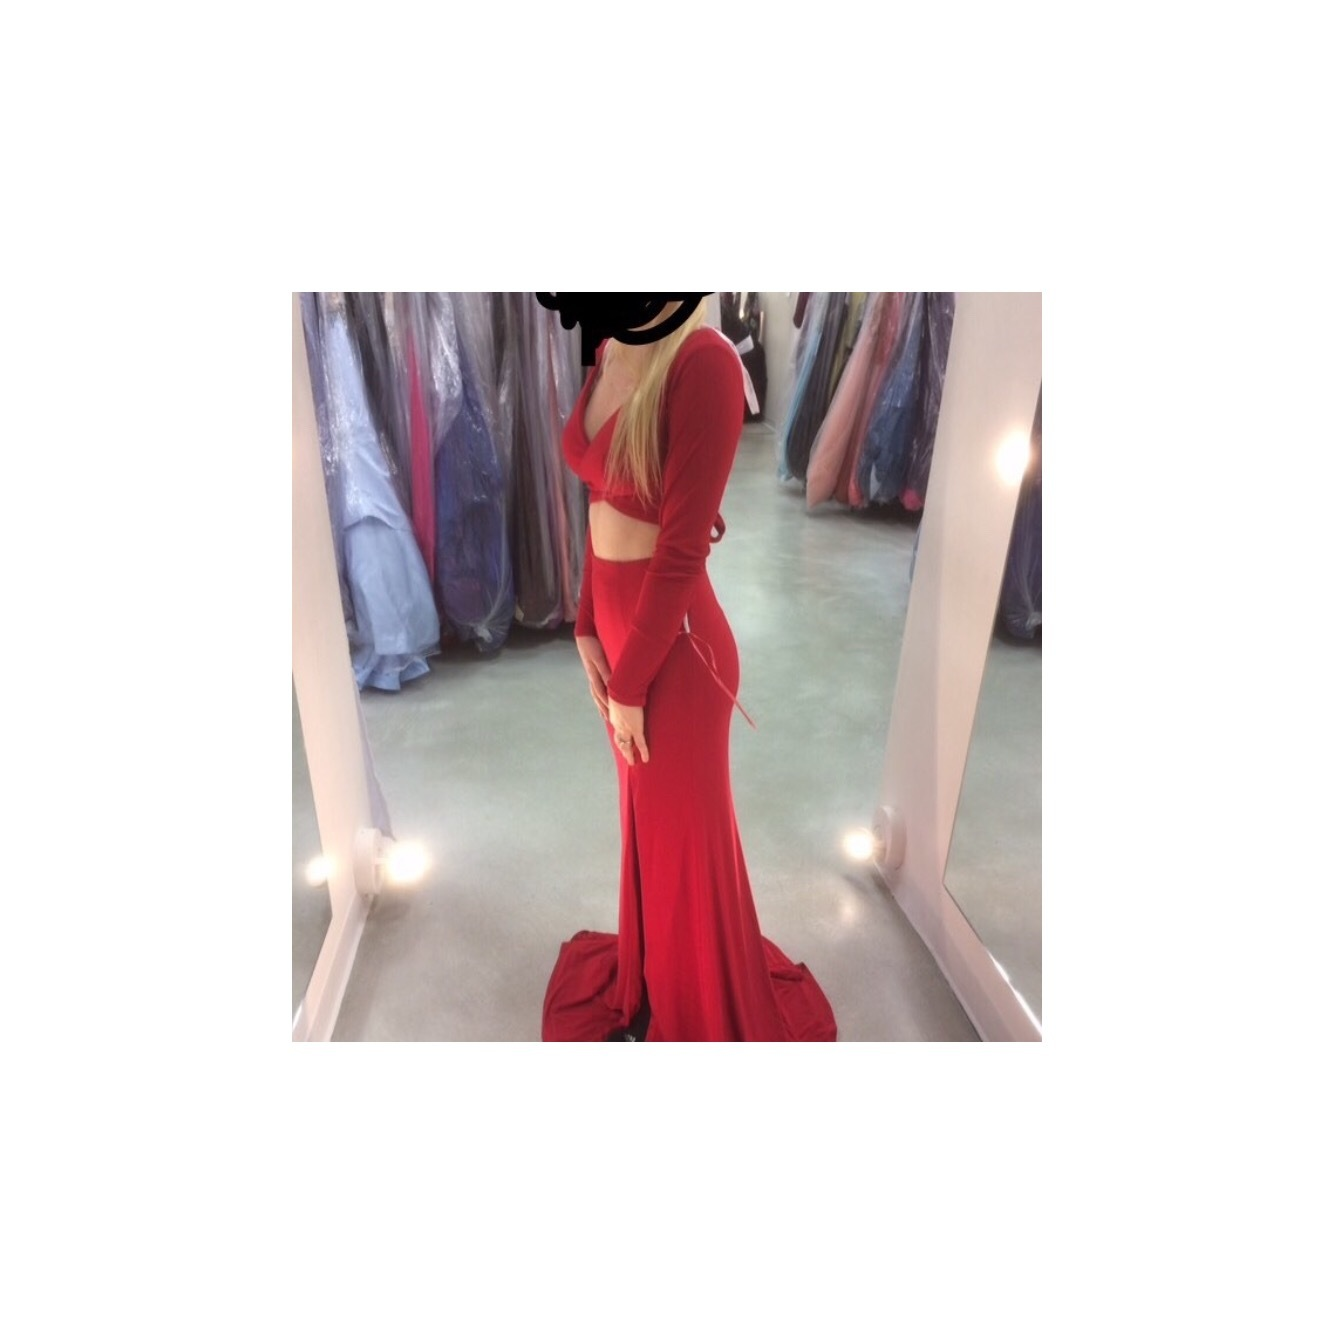 bda46ed1e7430 Loanables:Sherri Hill Prom Dress Rental located in Lowell, MA